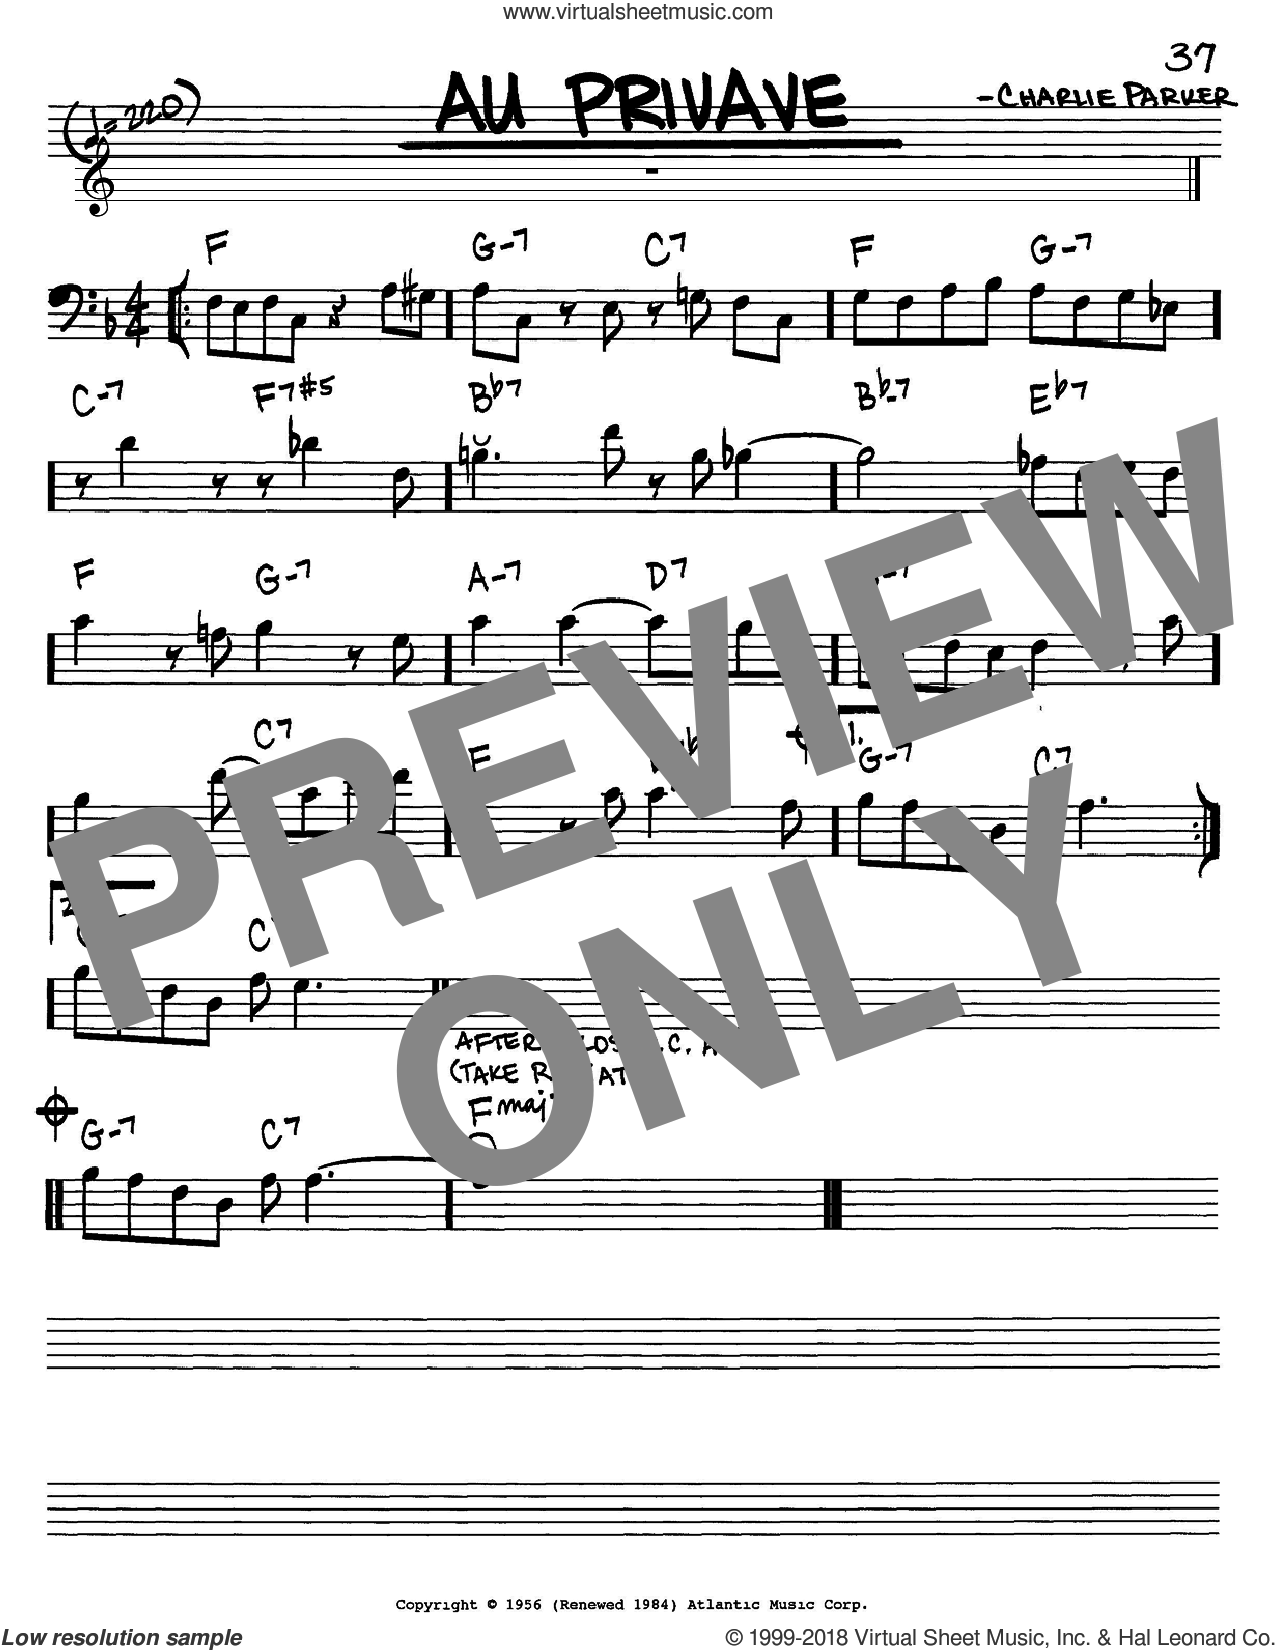 Au Privave sheet music for voice and other instruments (Bass Clef ) by Charlie Parker. Score Image Preview.